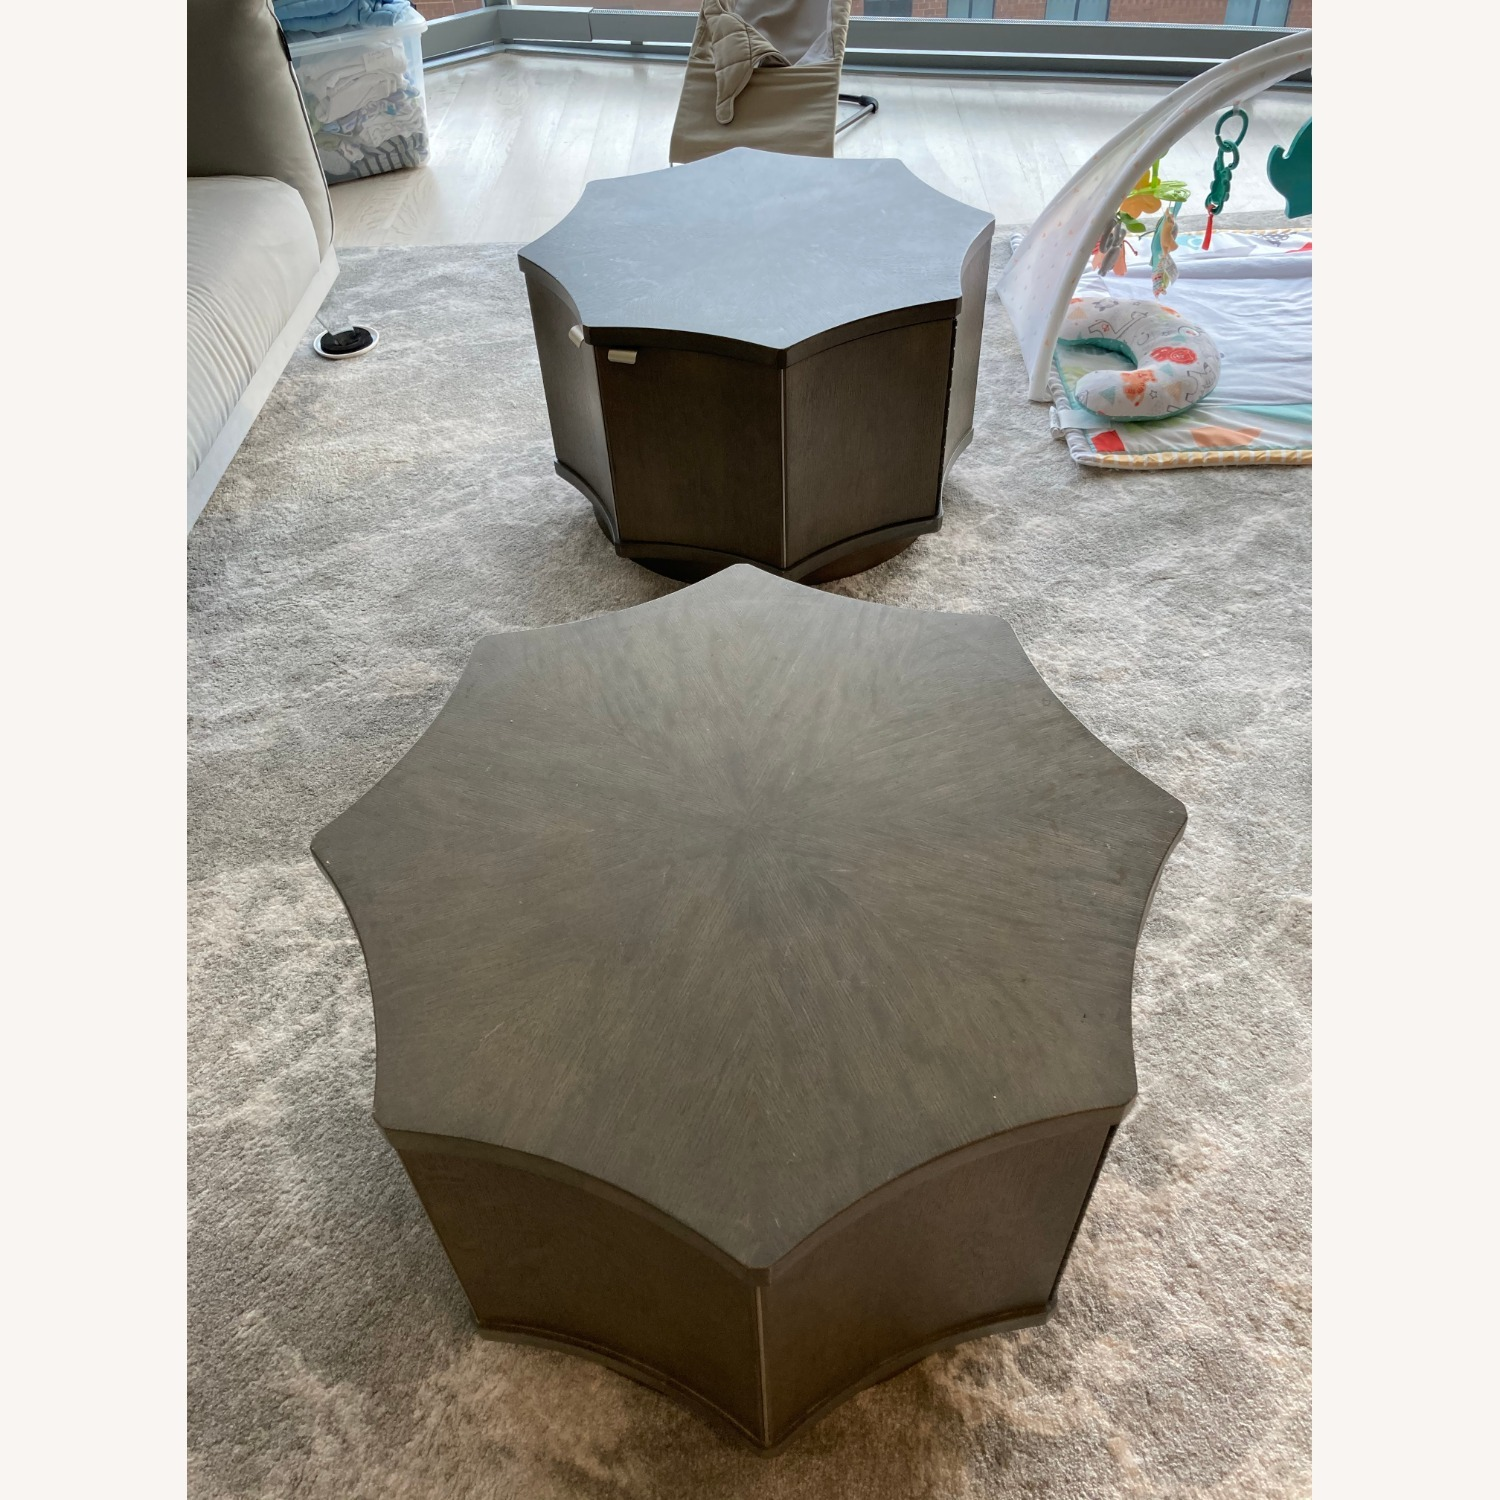 Two Octagonal Storage Coffee Tables - image-1